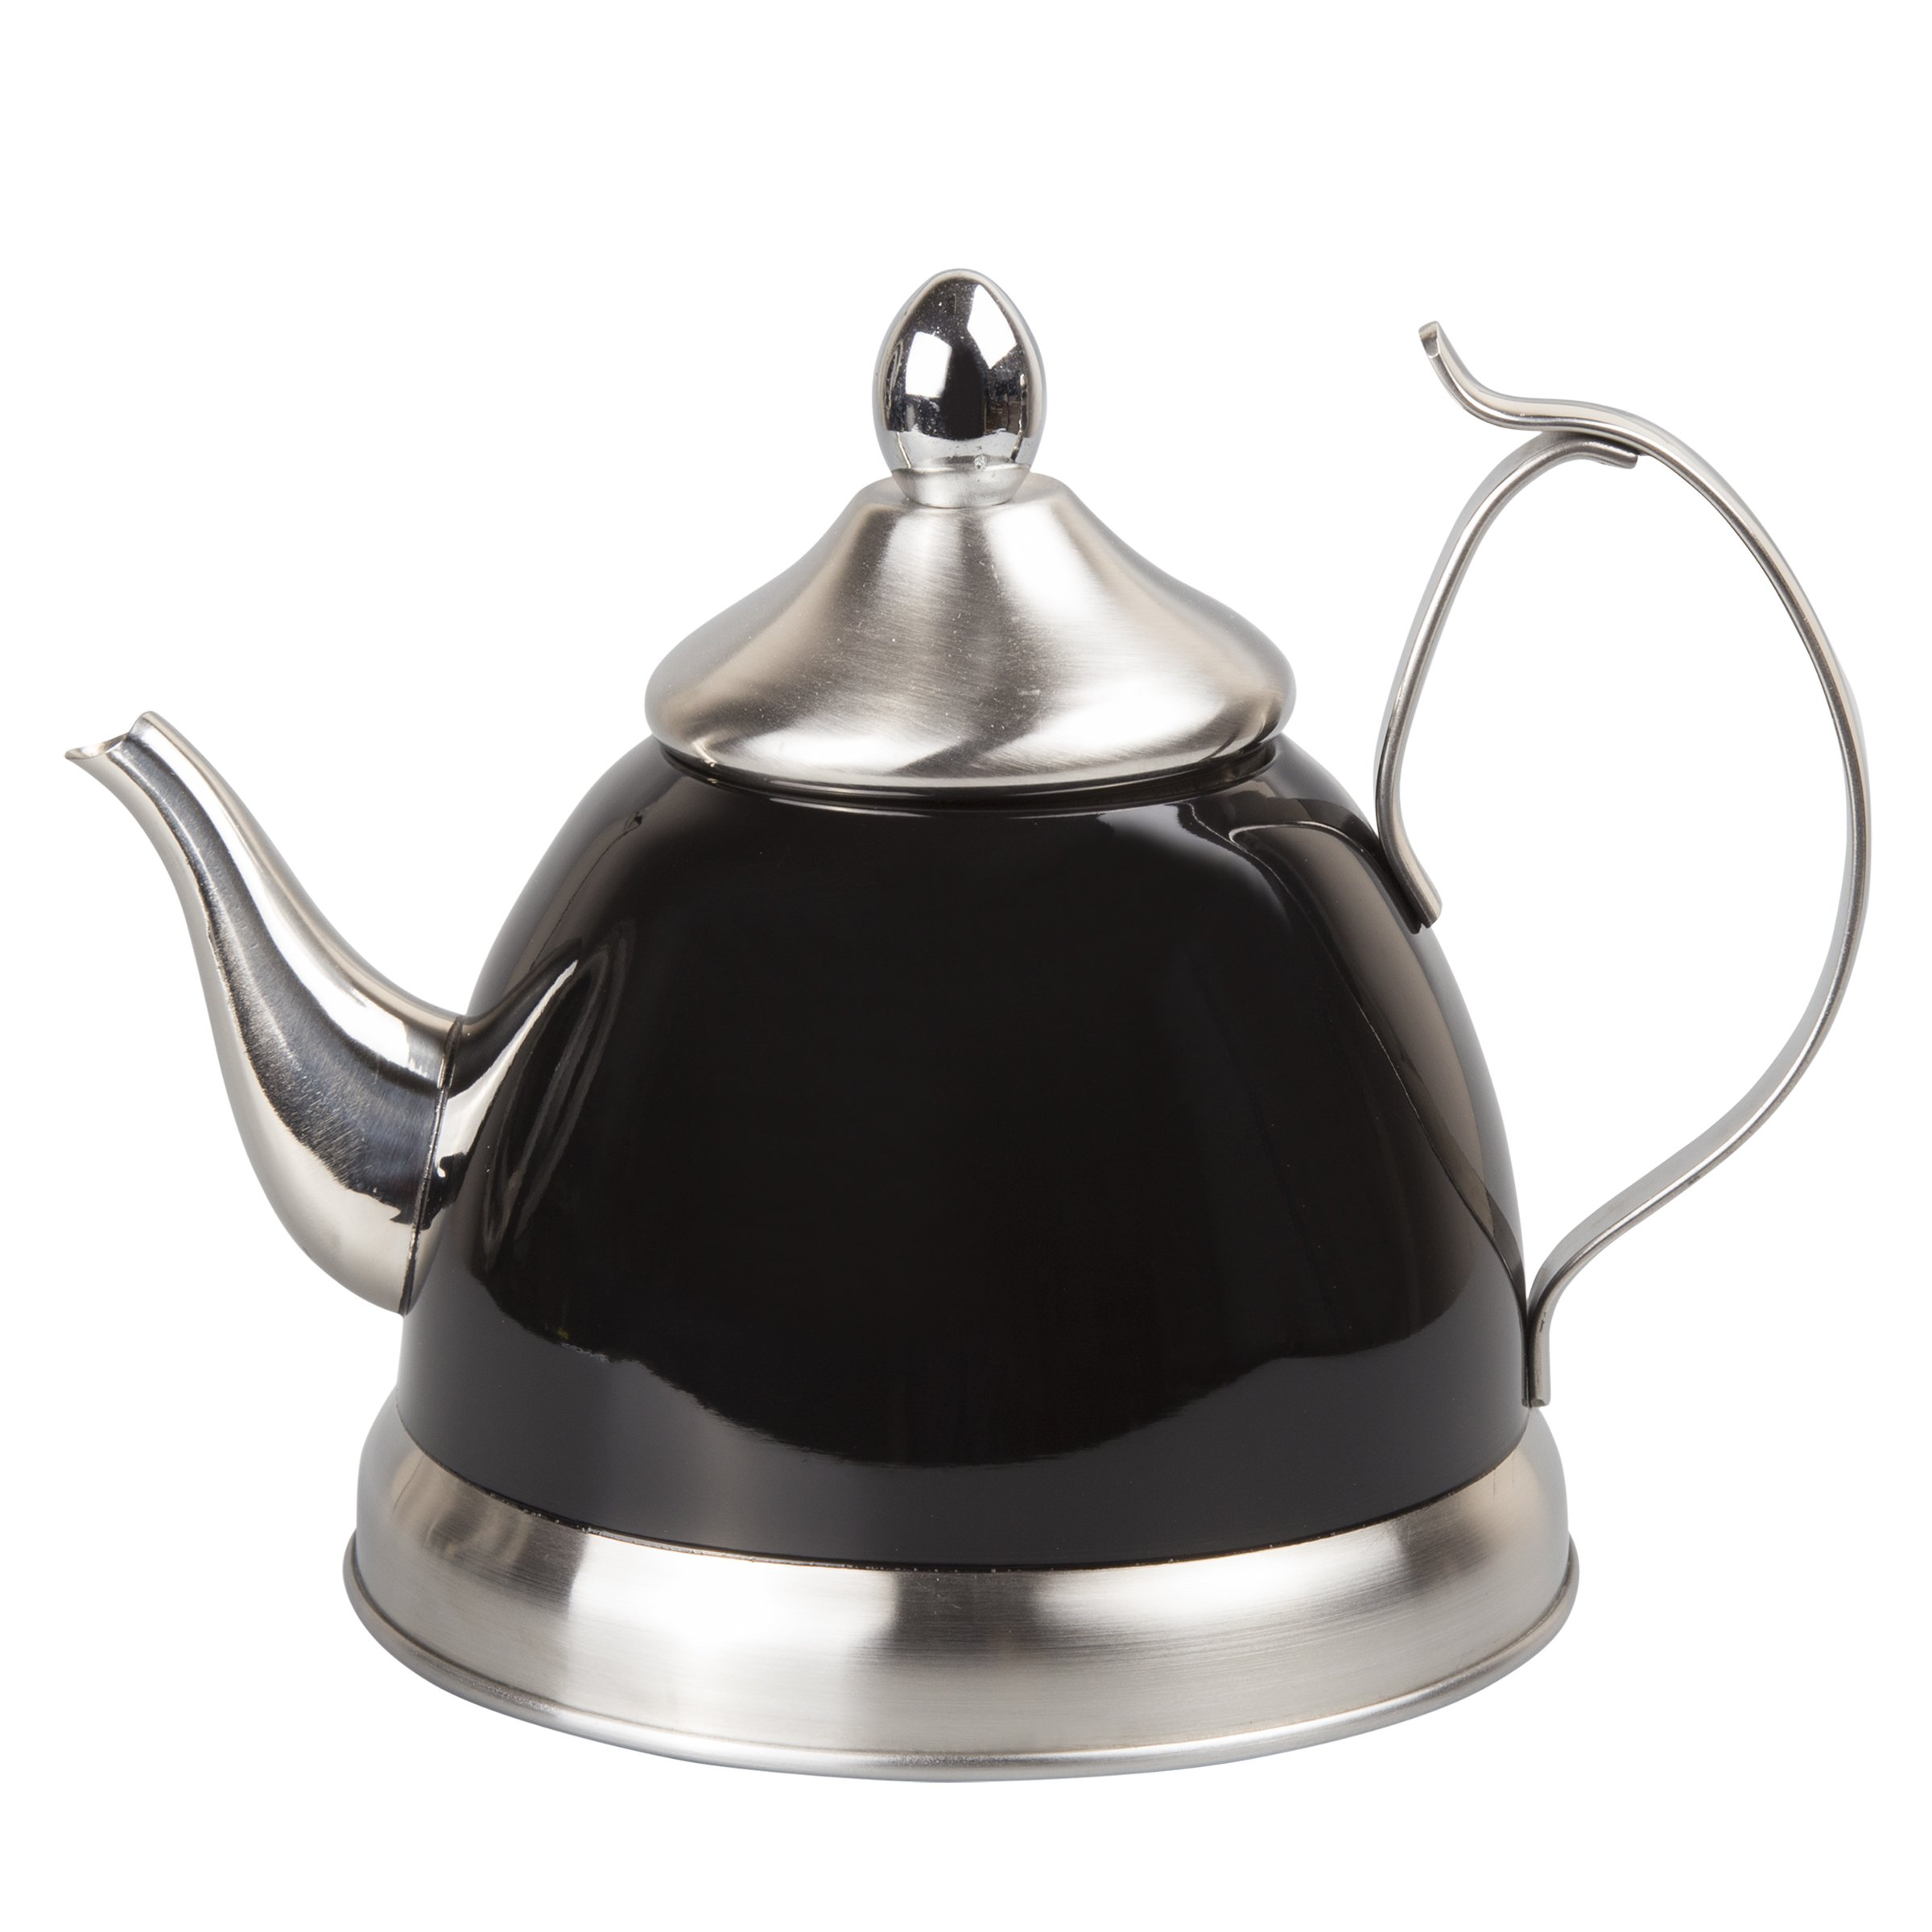 Creative Home 77078 1.0 Qt. Nobili-Tea Stainless Steel Kettle with Removable Infuser Basket, Filter Black